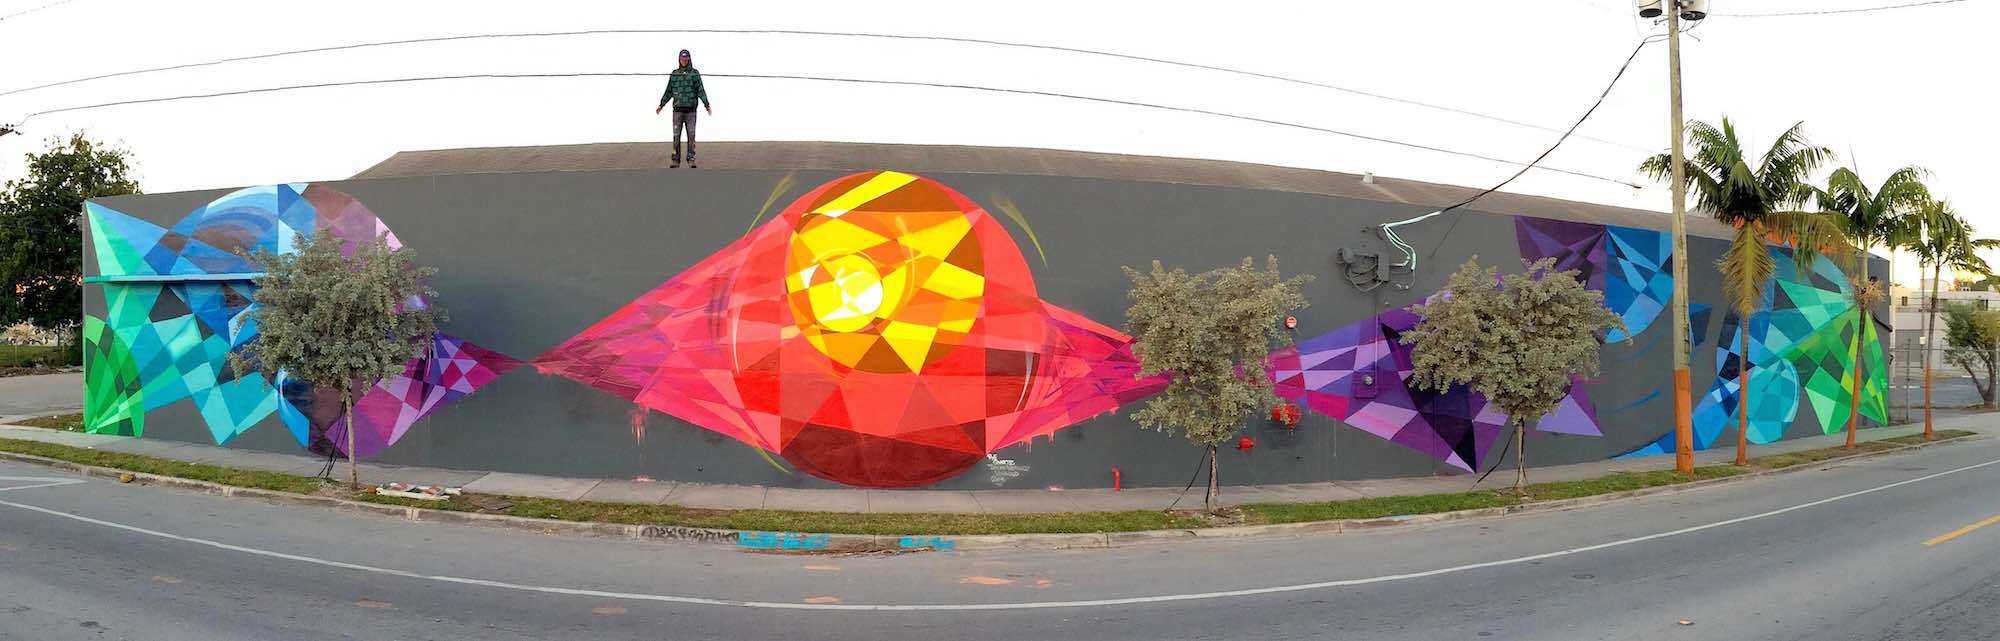 Rye QUARTZ - 'Dream Weaving' - Art Basel, Miami, 2014 (42 x5m) on NW 2nd Ave, Wynwood, Miami.